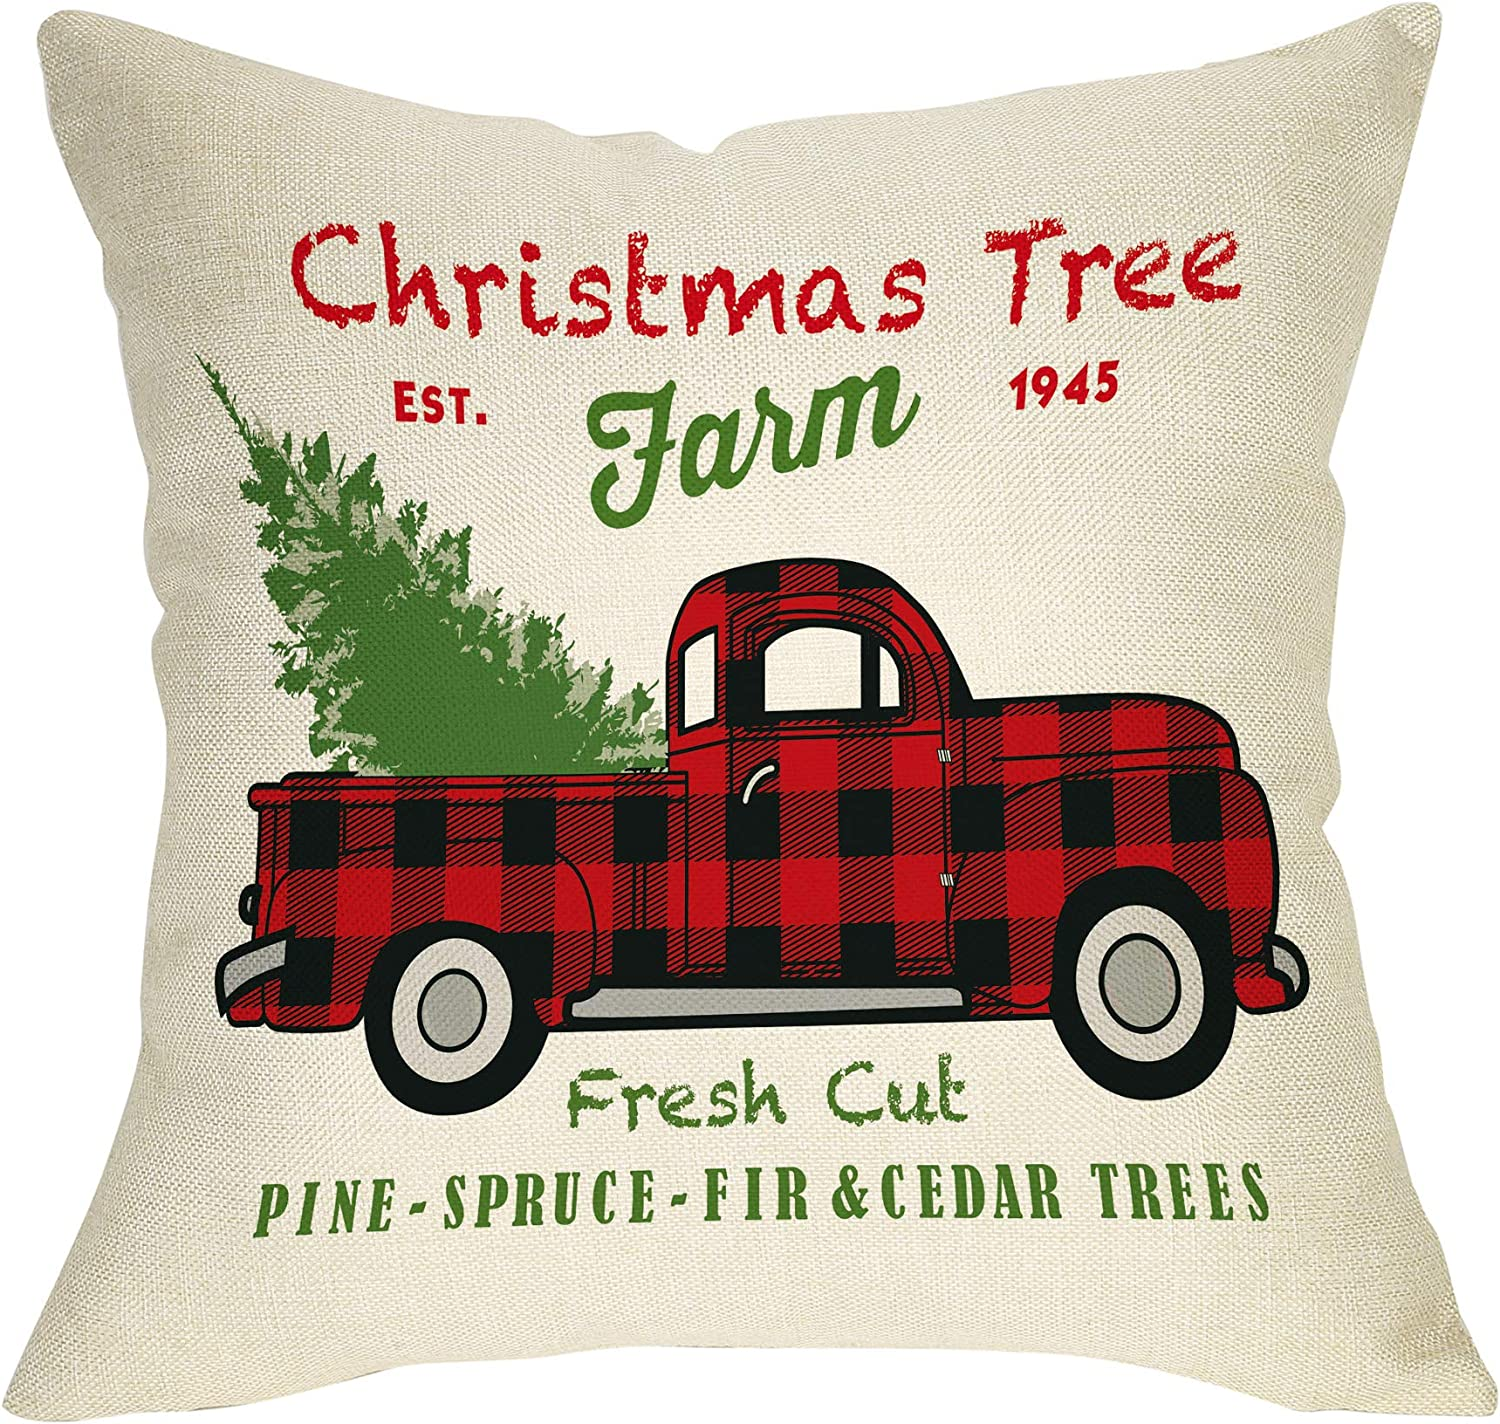 """Softxpp Christmas Farmhouse Decorative Throw Pillow Cover Vintage Red Buffalo Plaid Truck Winter Holiday Decoration Xmas Tree Farm Sign Home Decor Cushion Case for Sofa Couch 18"""" x 18"""" In Cotton Linen"""